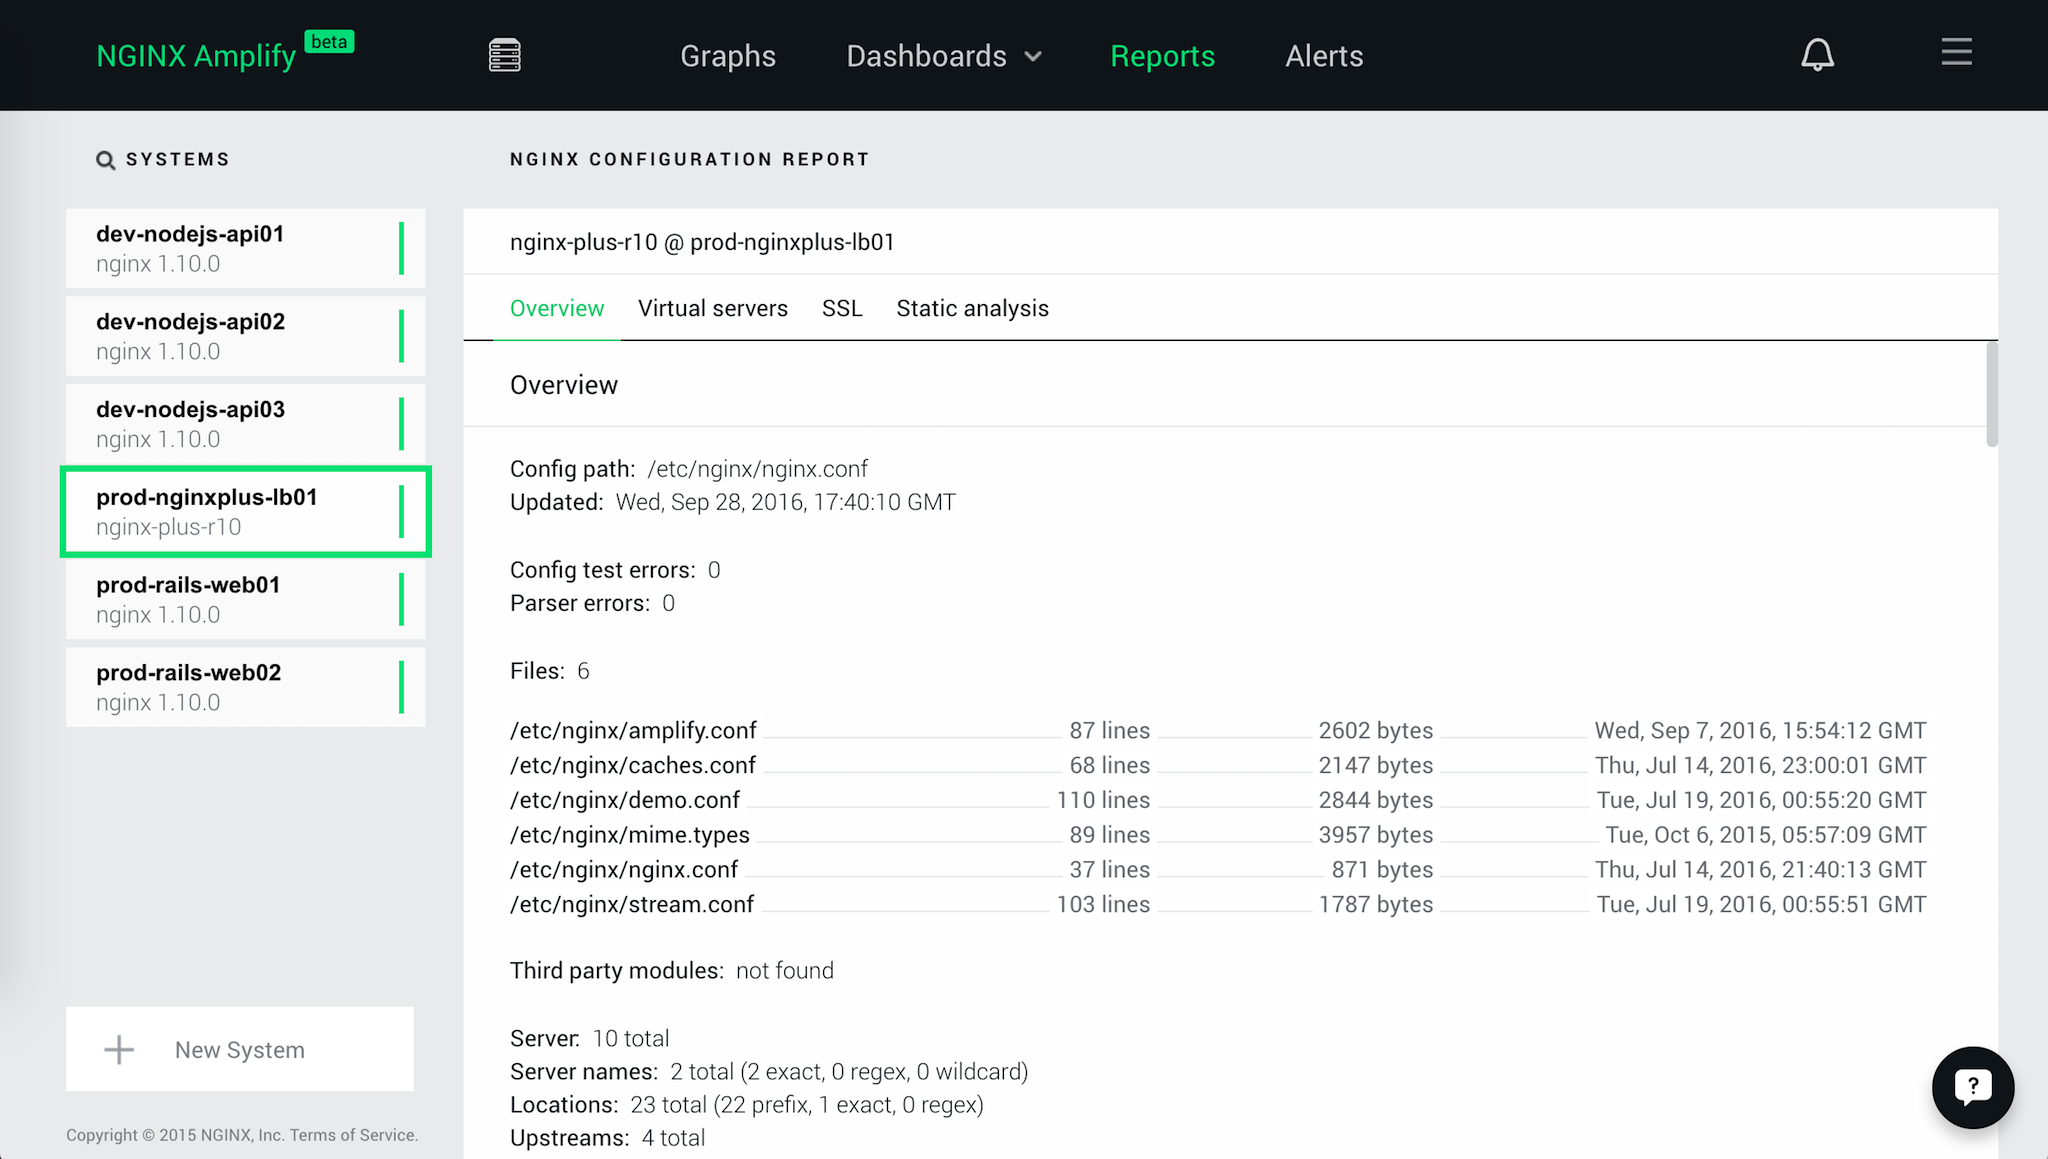 Screenshot of NGINX configuration analysis generated by the NGINX Amplify, which you can also use to monitor NGINX in real time